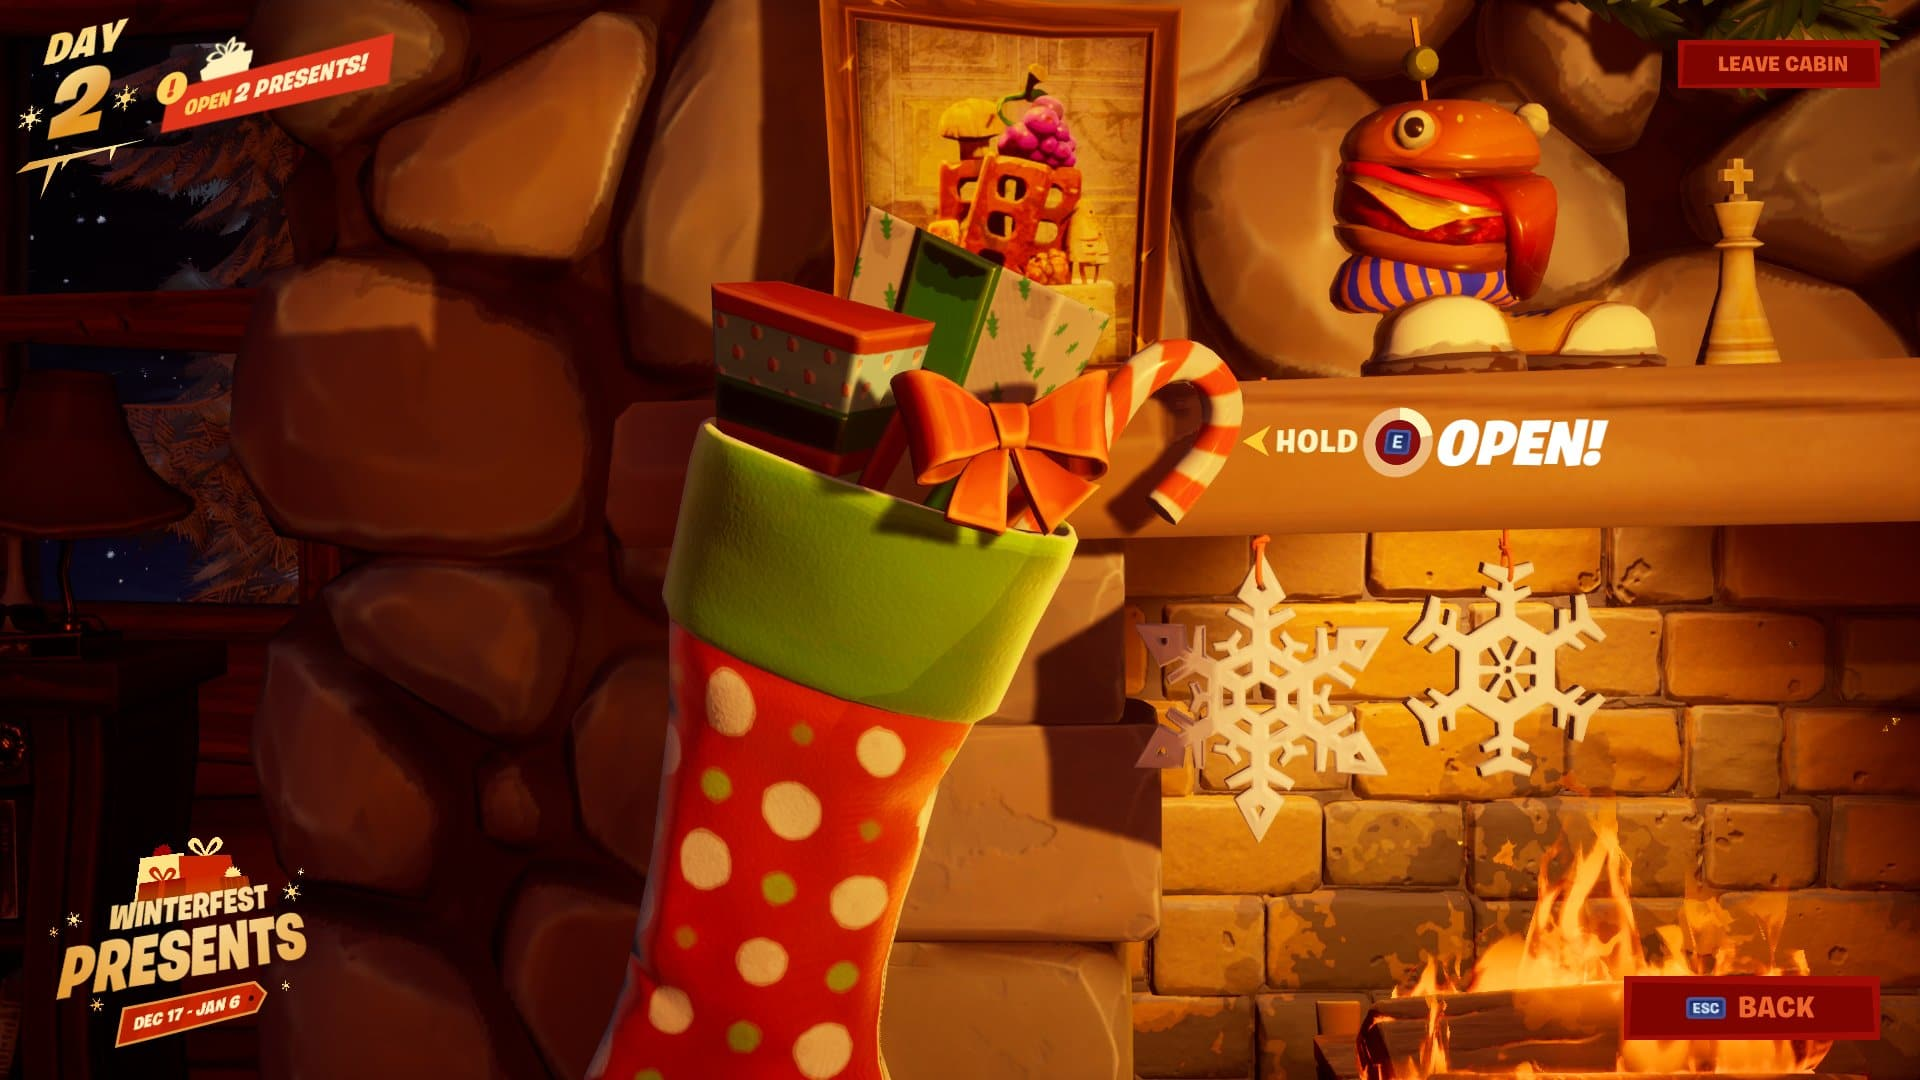 Fortnite Winter Update 2019 Fortnite Winterfest 2019 Christmas Challenges Rewards Presents Start Date Likely Delayed